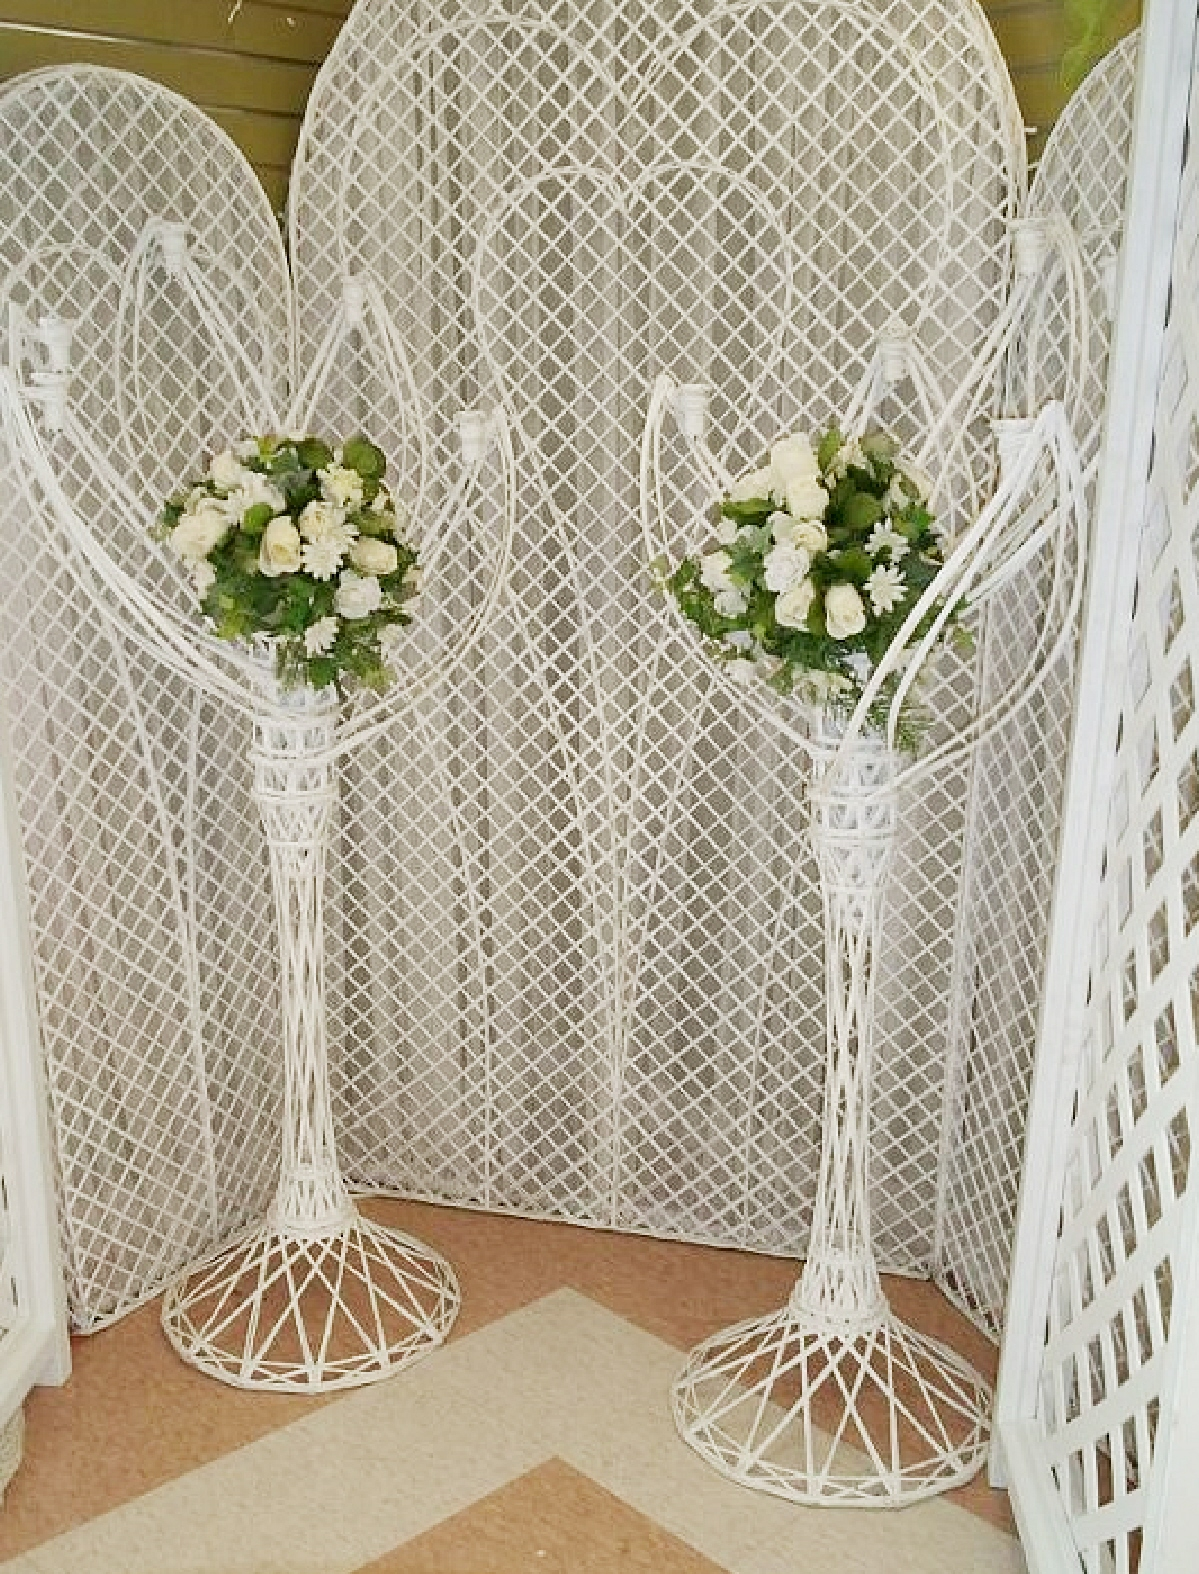 5 Leaf Wicker Stand w/White Flowers